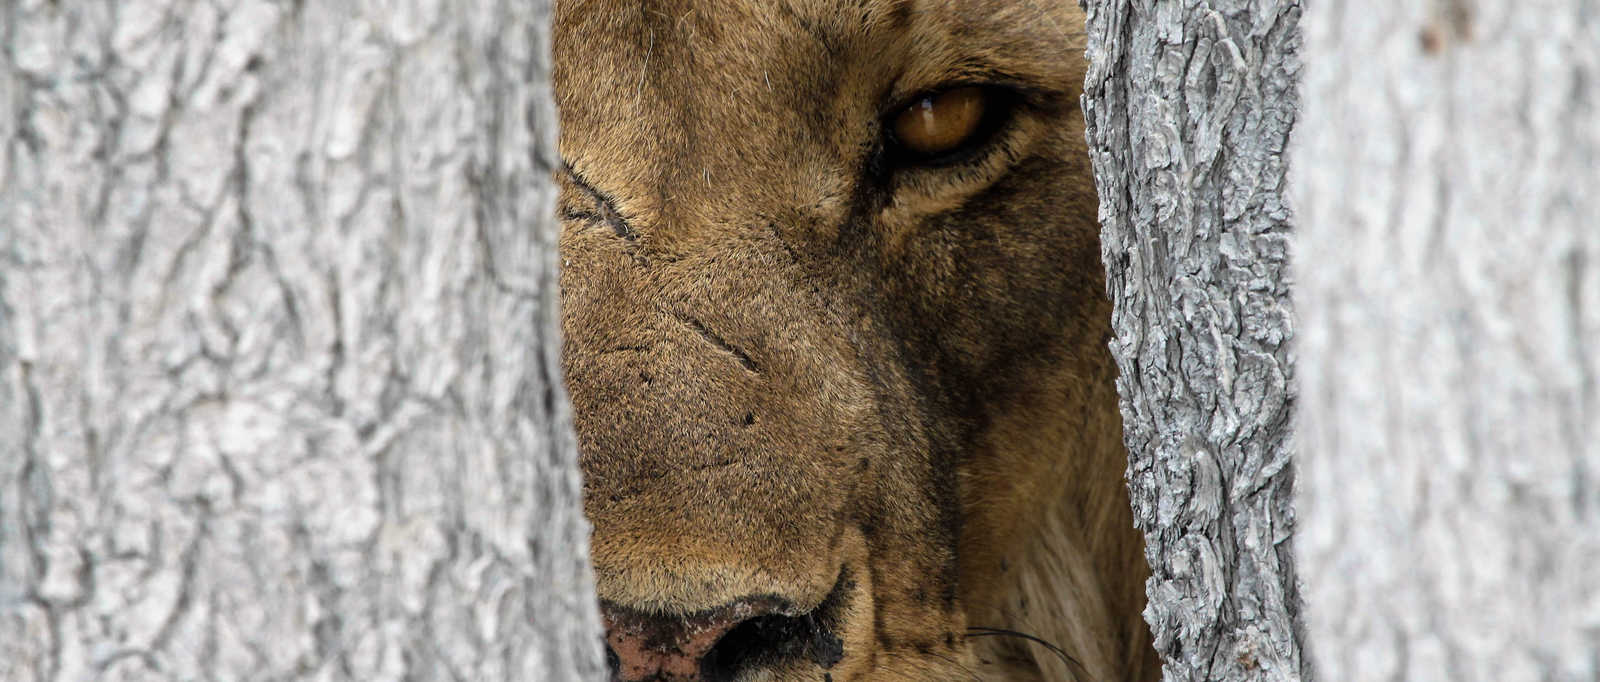 Lion in Namibia - Client Photo Winner